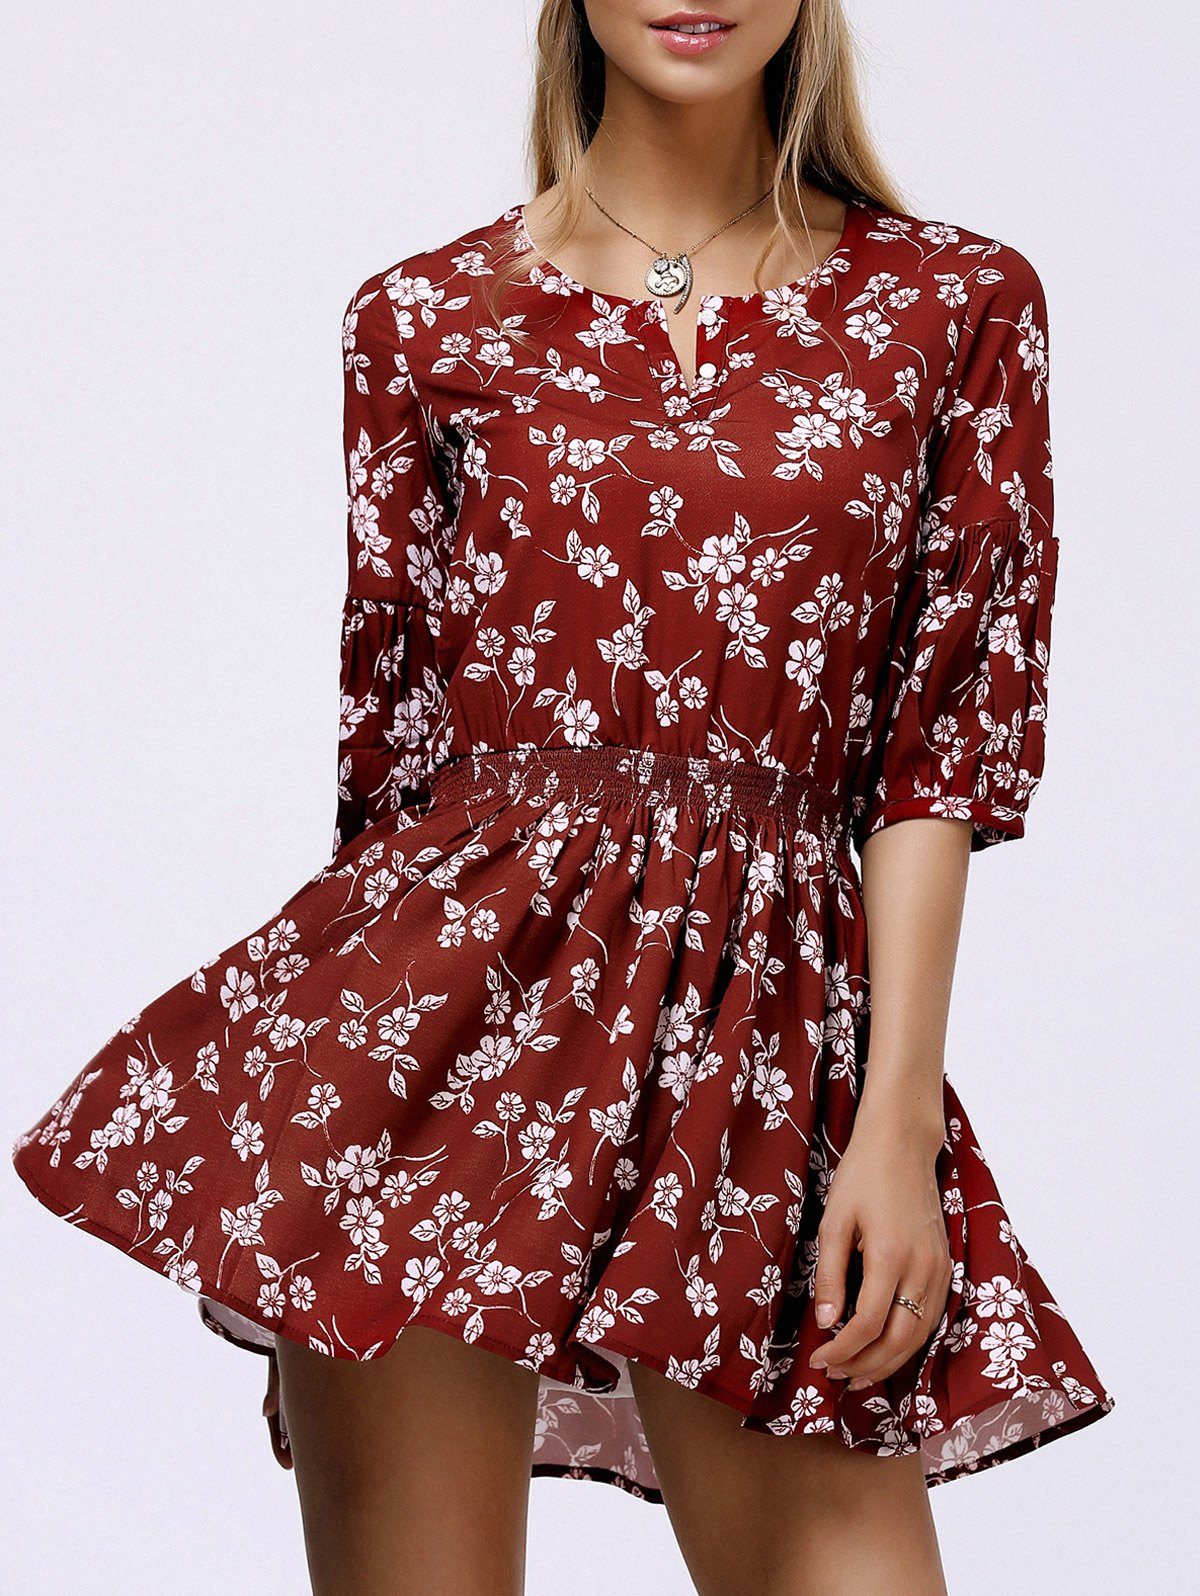 Fashionable 3/4 Sleeve Slimming Floral Print Women's Dress